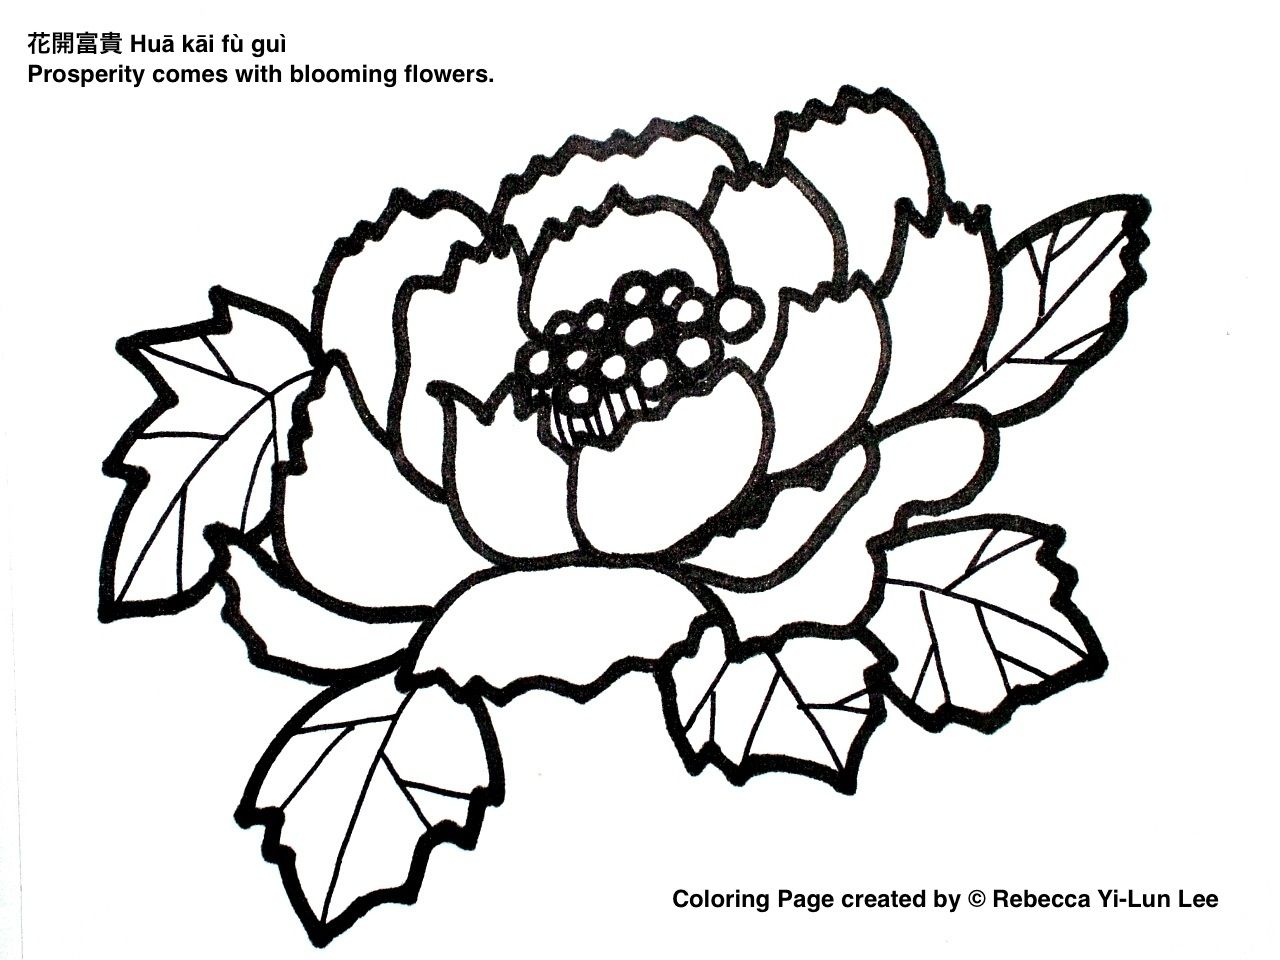 Miss Panda Chinese New Year Coloring Page Prosperity With Blooming Flower